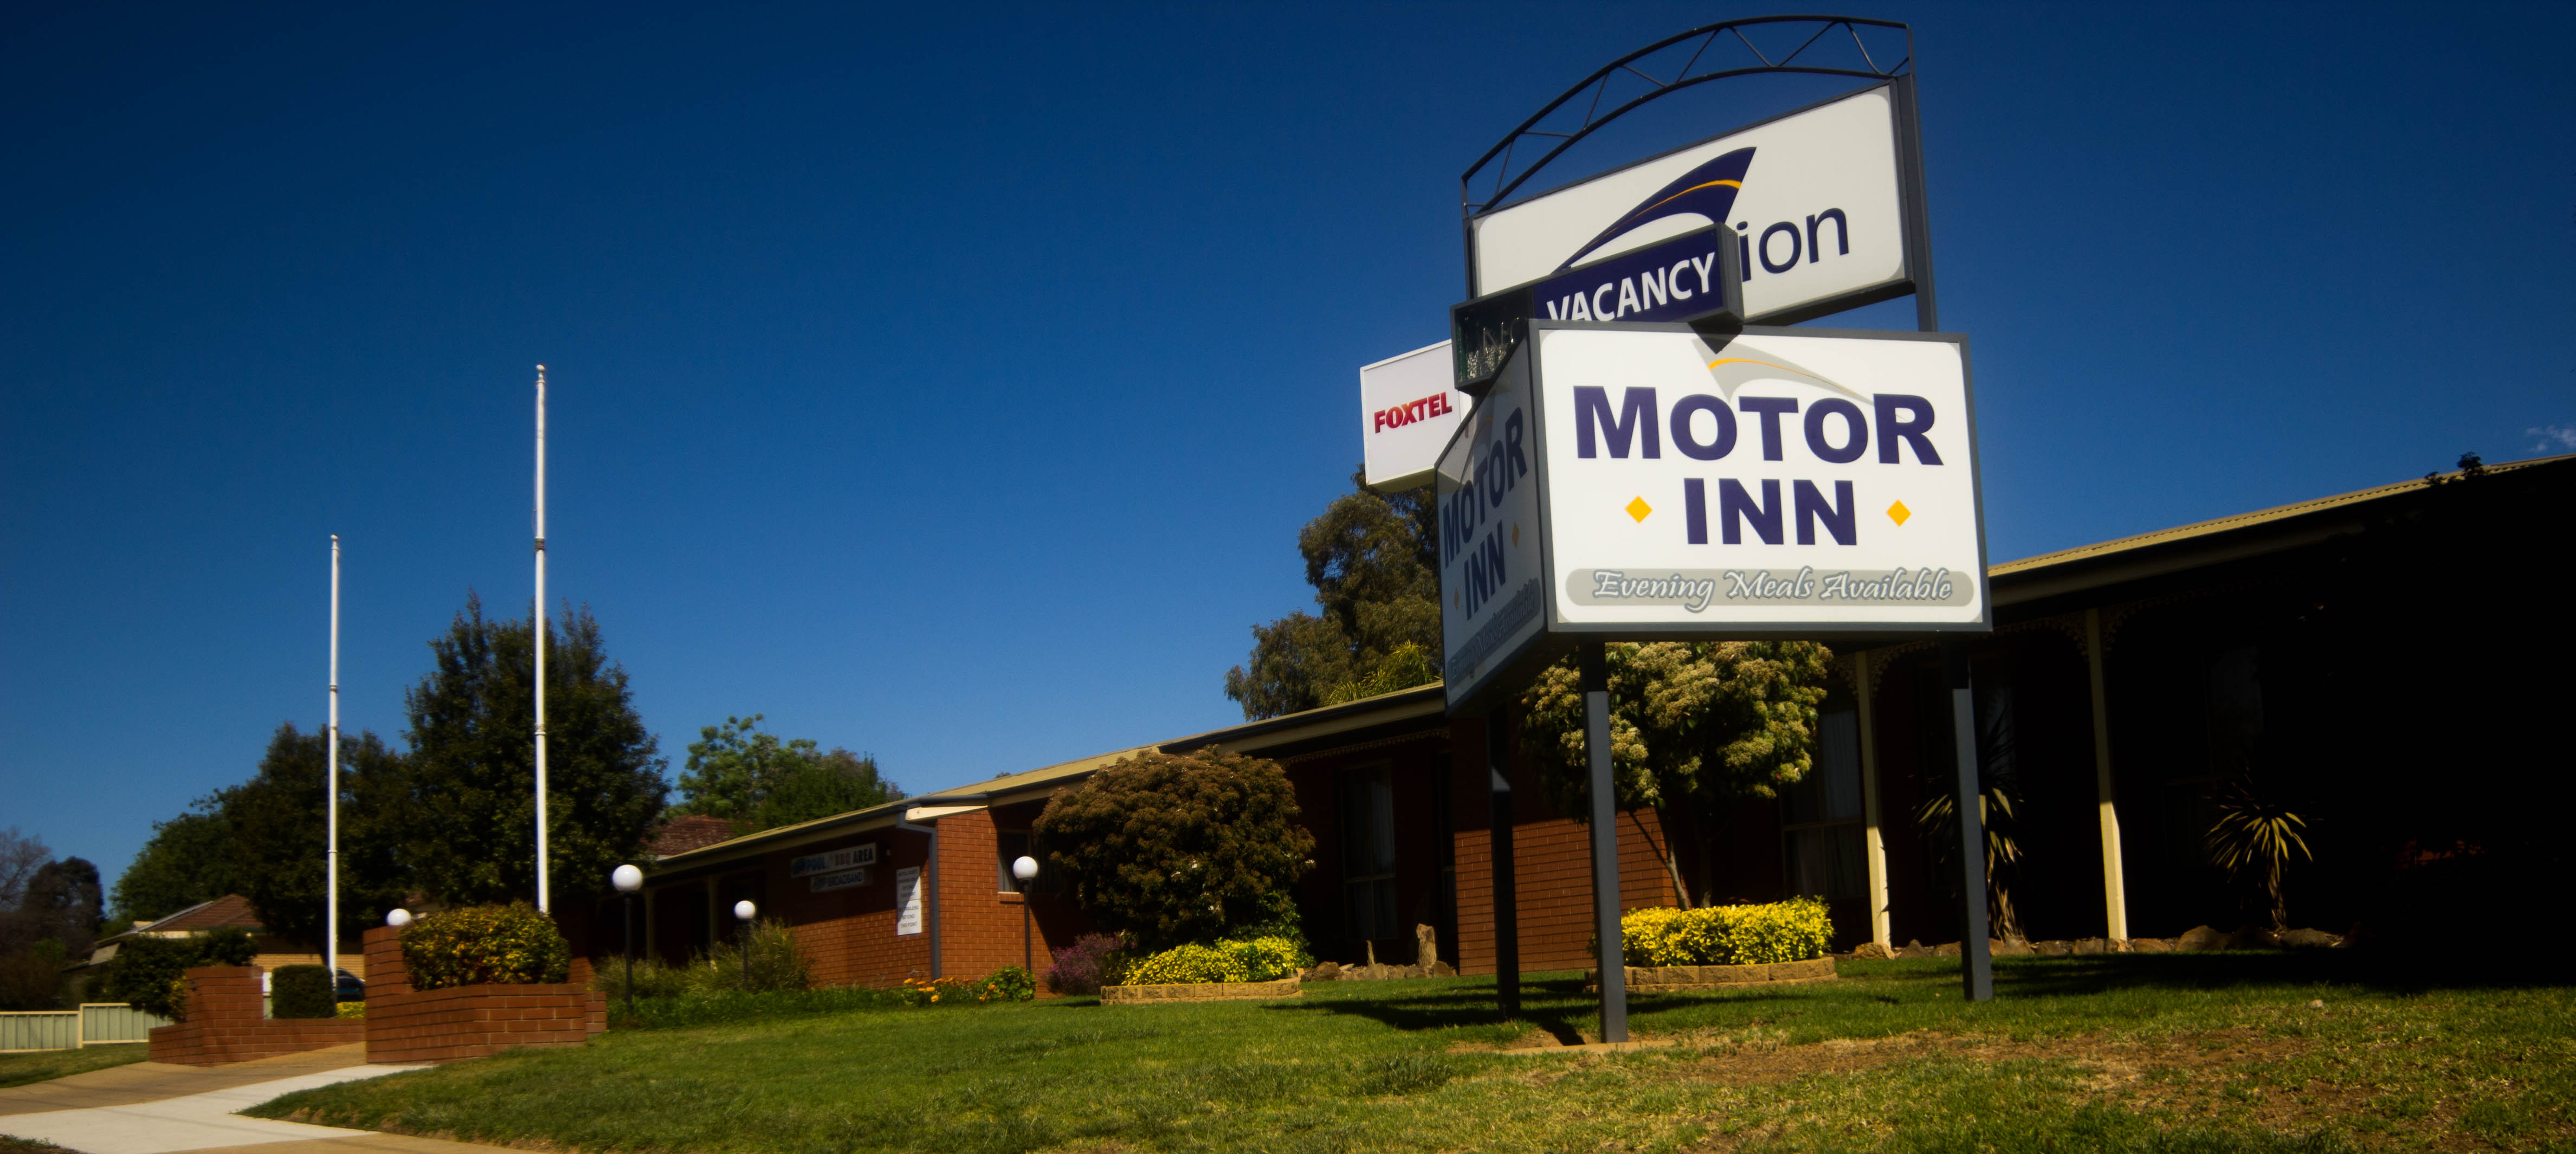 Junction Motor Inn - Melbourne Tourism